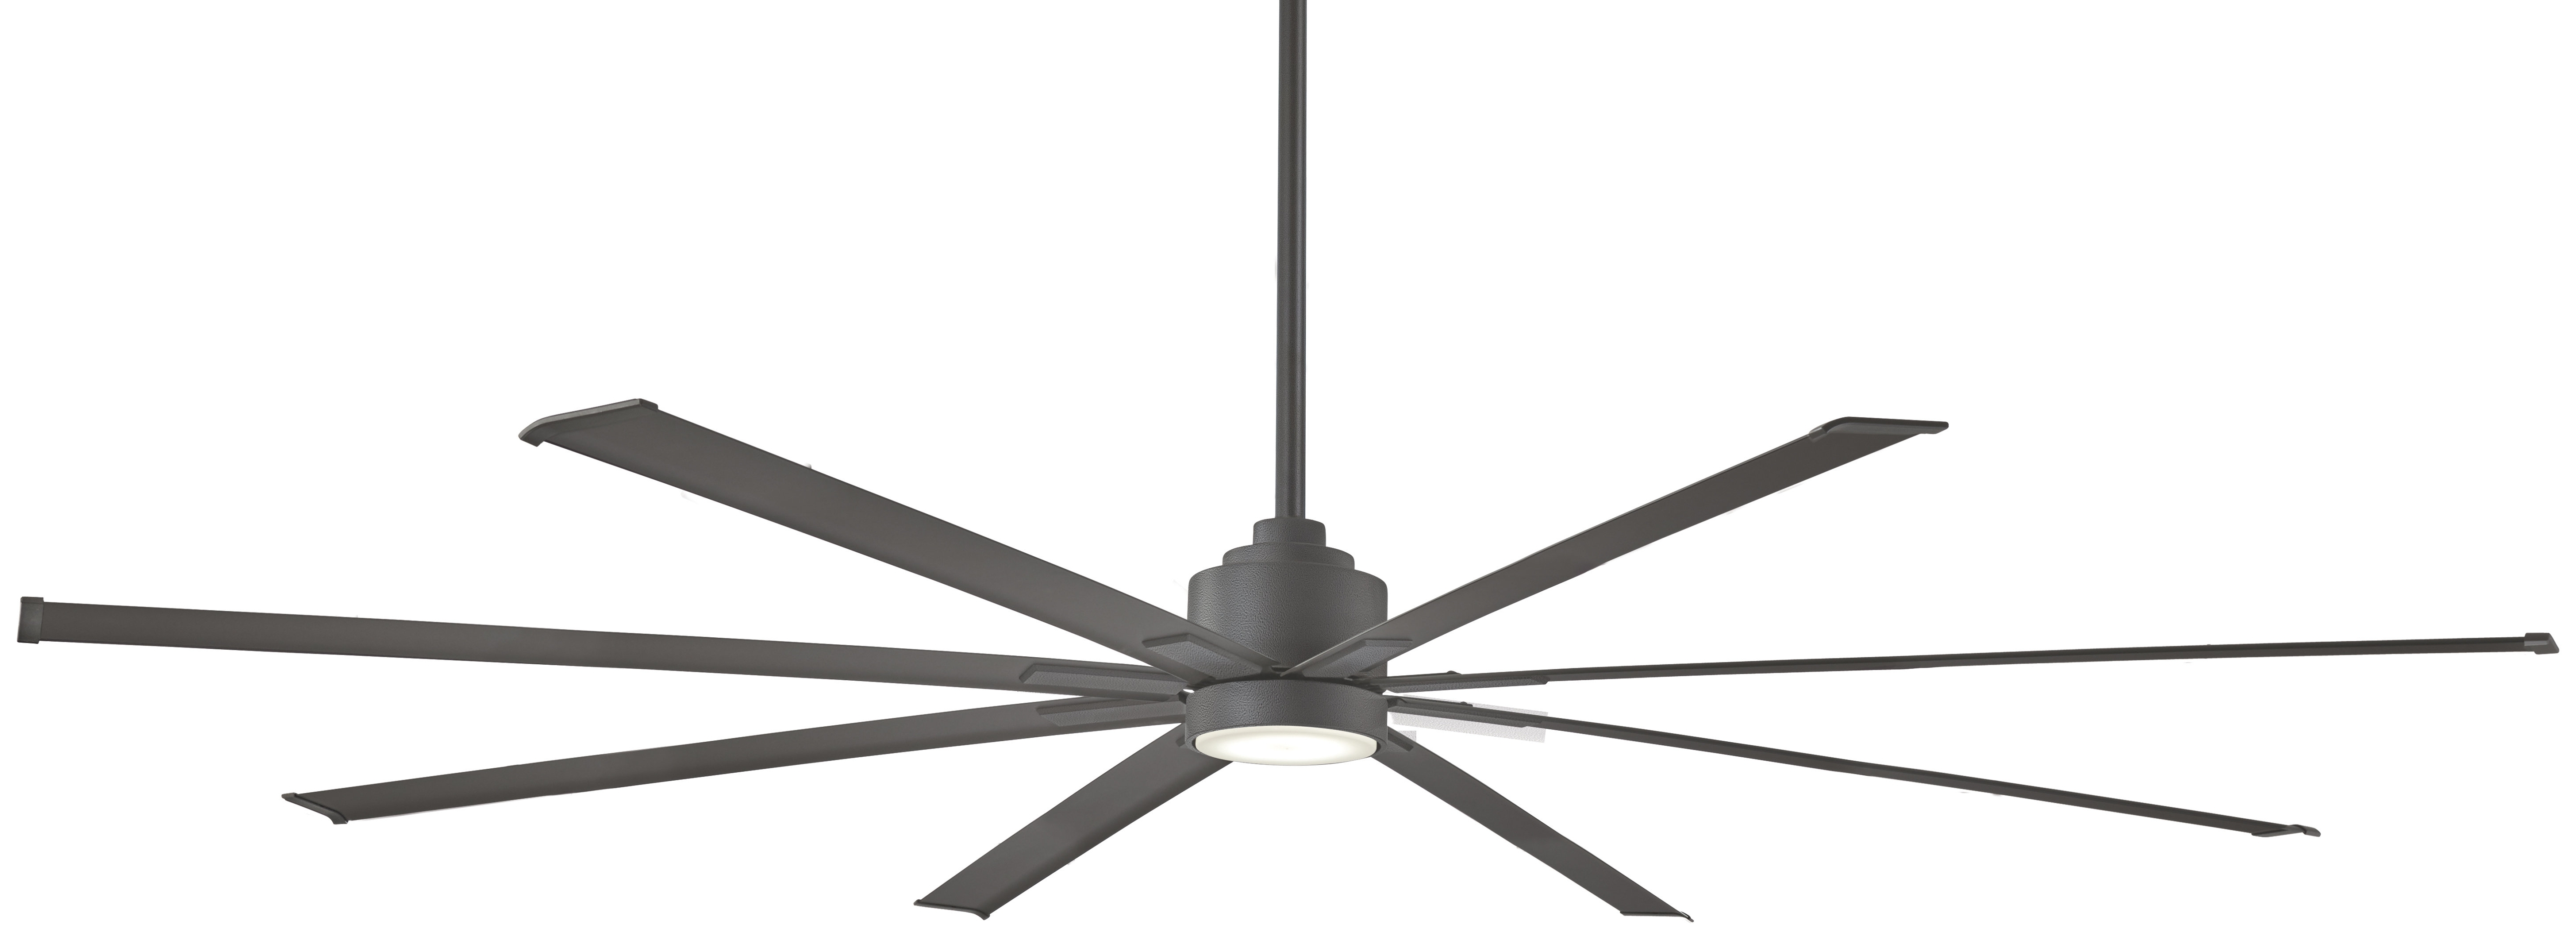 "Trendy Outdoor Ceiling Fans With Remote With Regard To Minka Aire 84"" Xtreme 8 Outdoor Ceiling Fan With Remote & Reviews (View 4 of 20)"